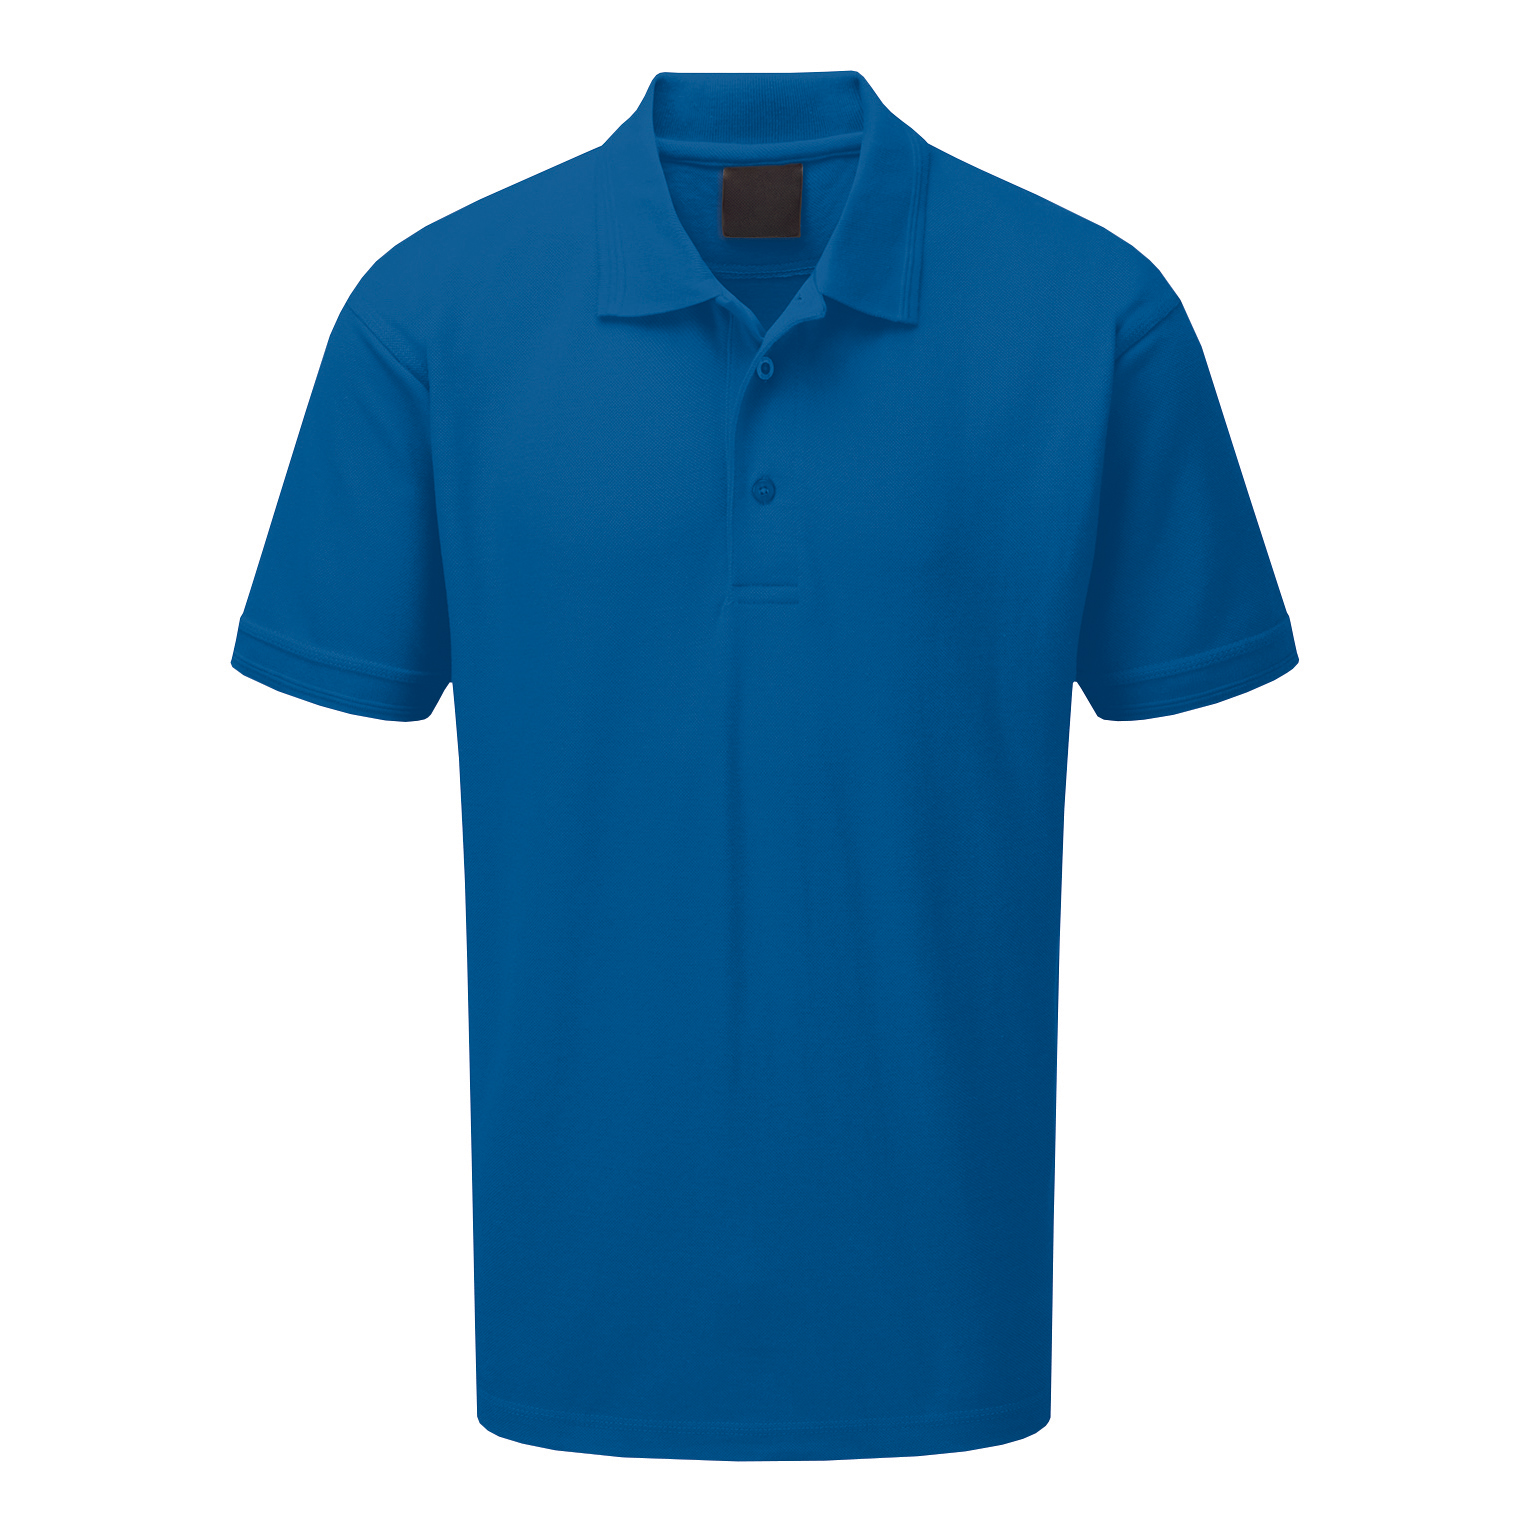 Business Polo Premium Triple Stitched Size 5XL Royal Blue